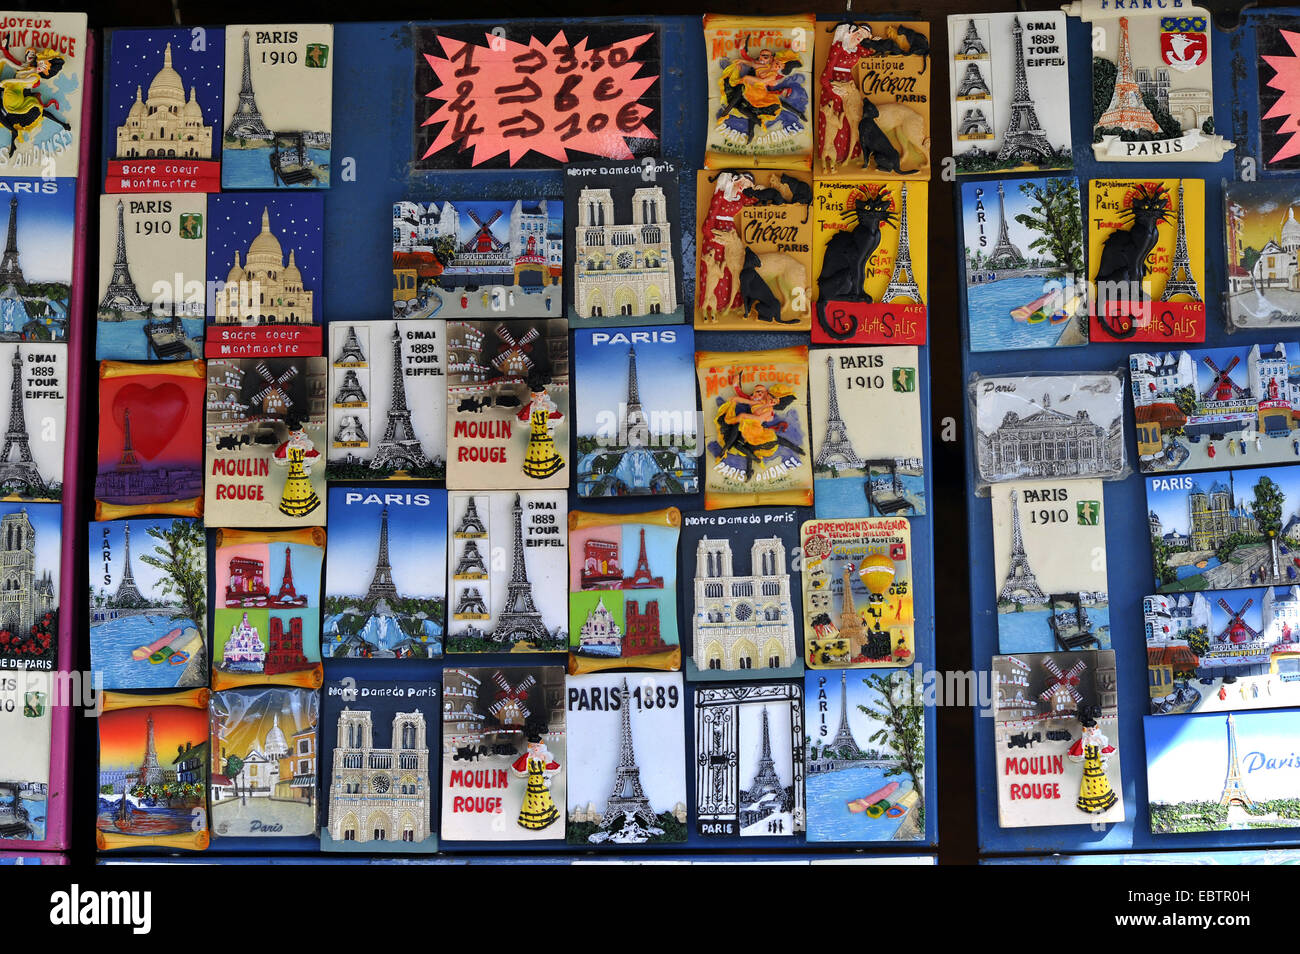 collection of nostalgic postcards at a souvenir booth, France, Paris - Stock Image